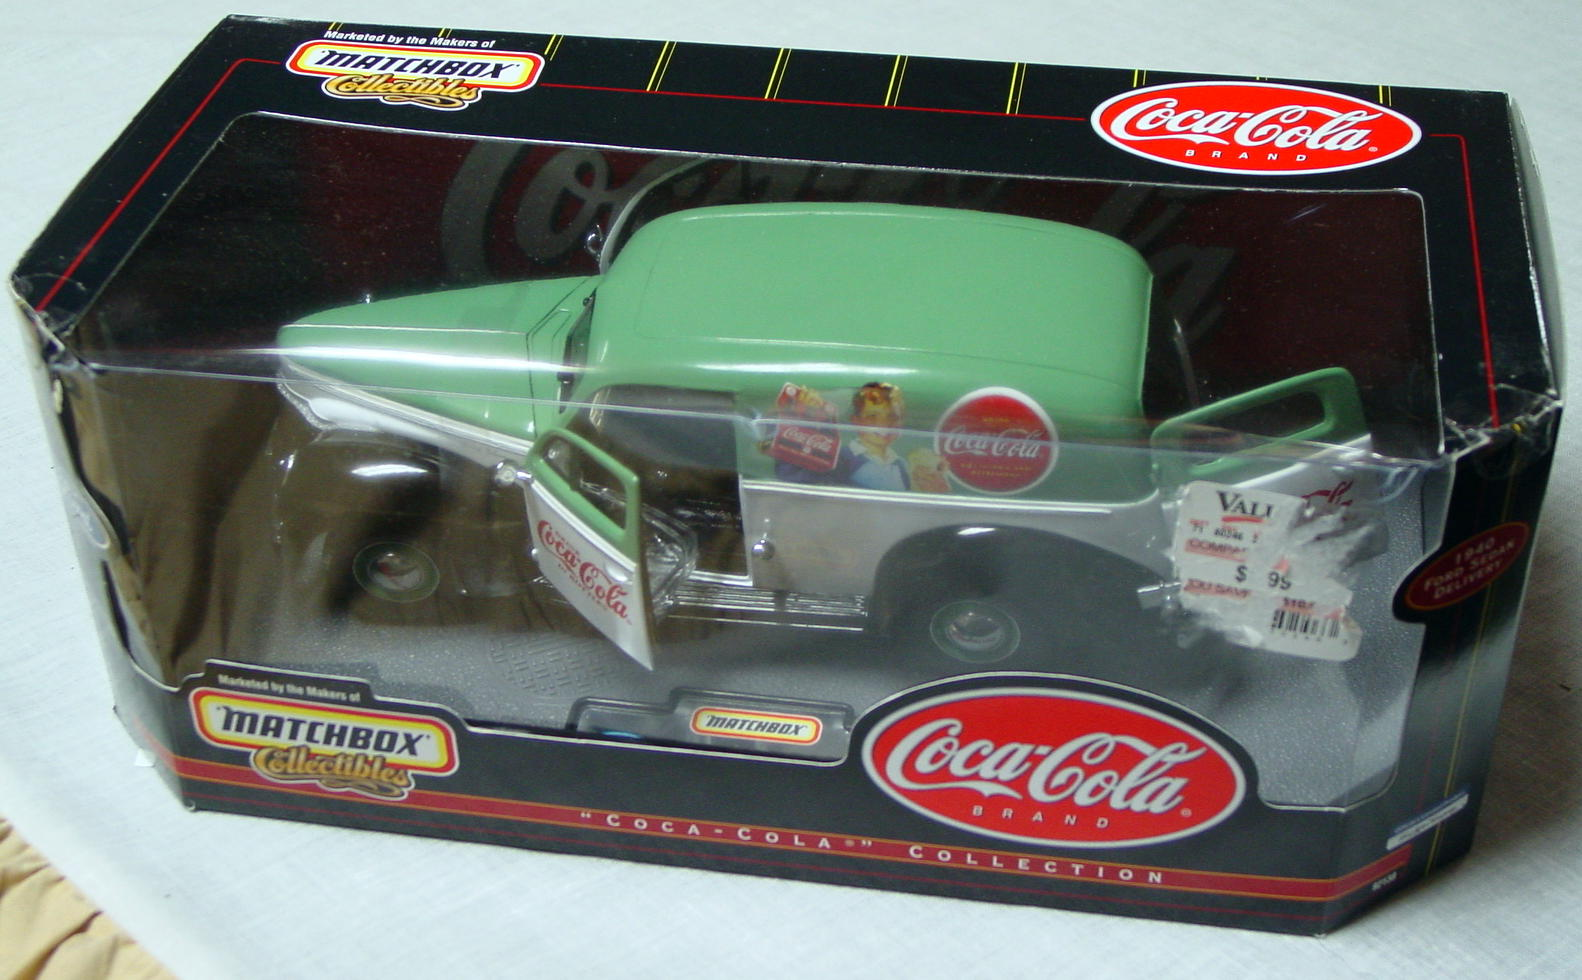 1_18 Scale - MATCHBOX 40 Ford Sedan Del COKE pale green and white